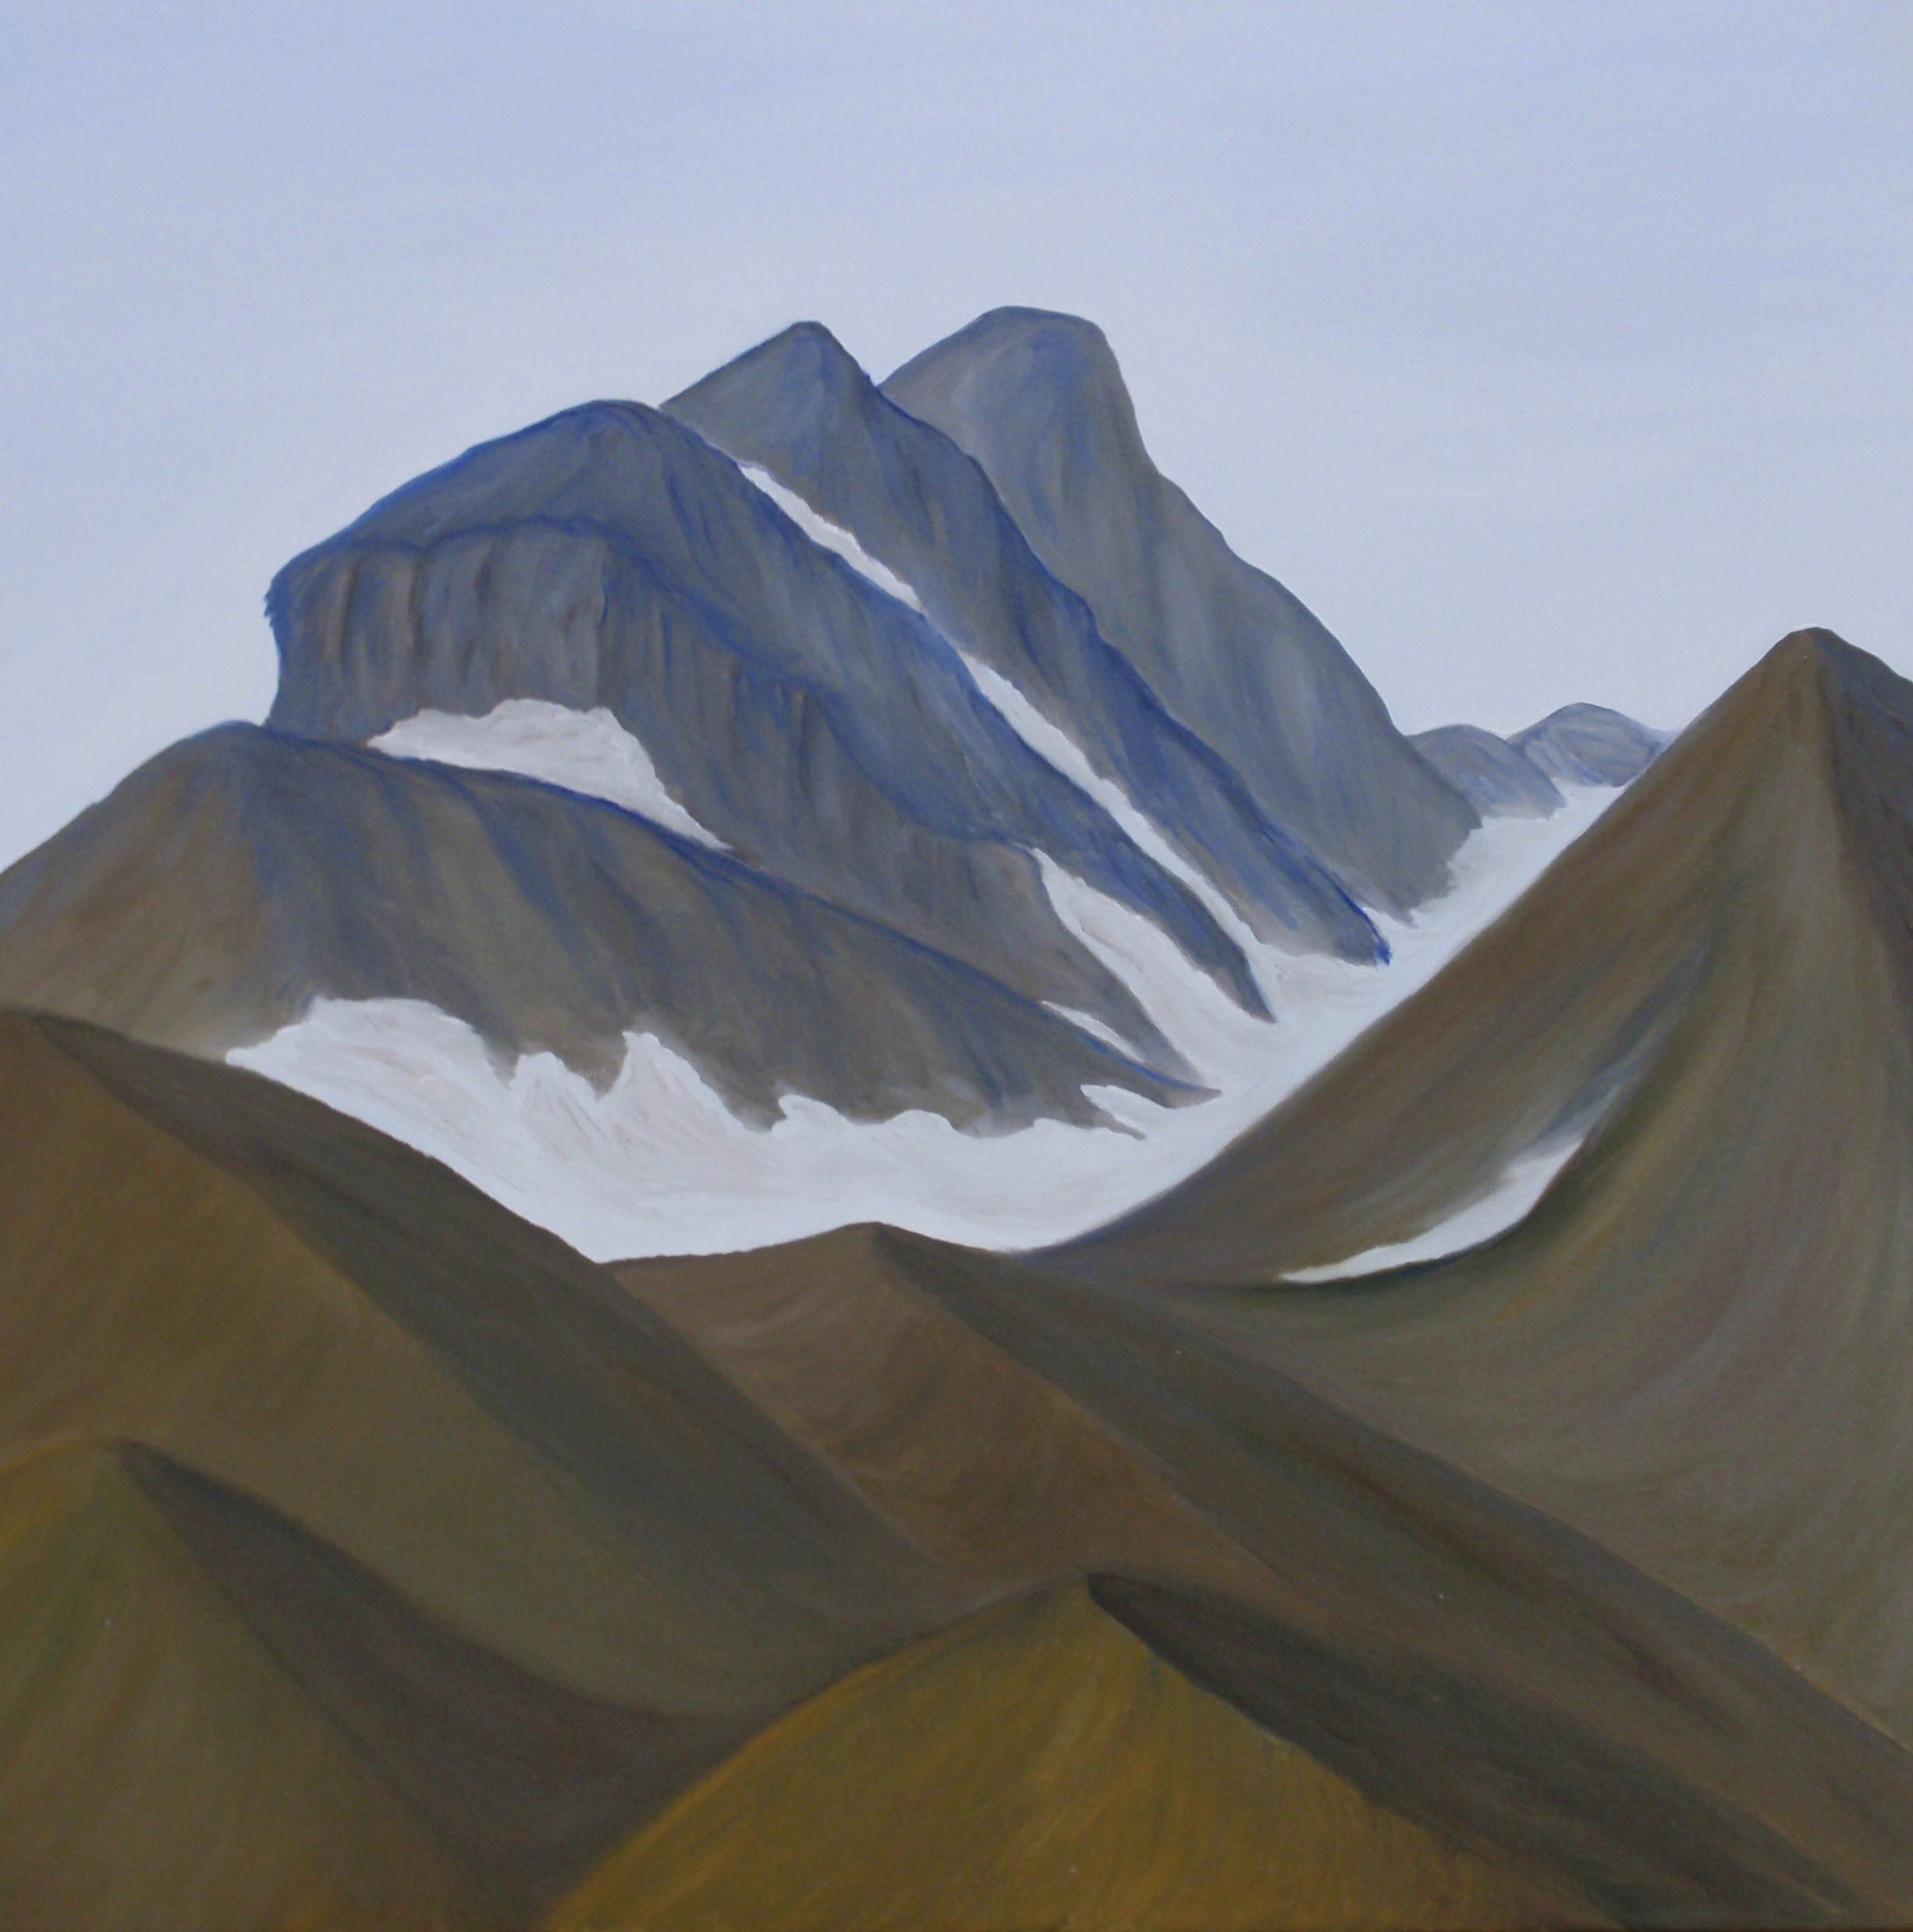 Danyel Dean | Paintings | Santa Barbara, California | Smithers, British Columbia | Brian Boru Range